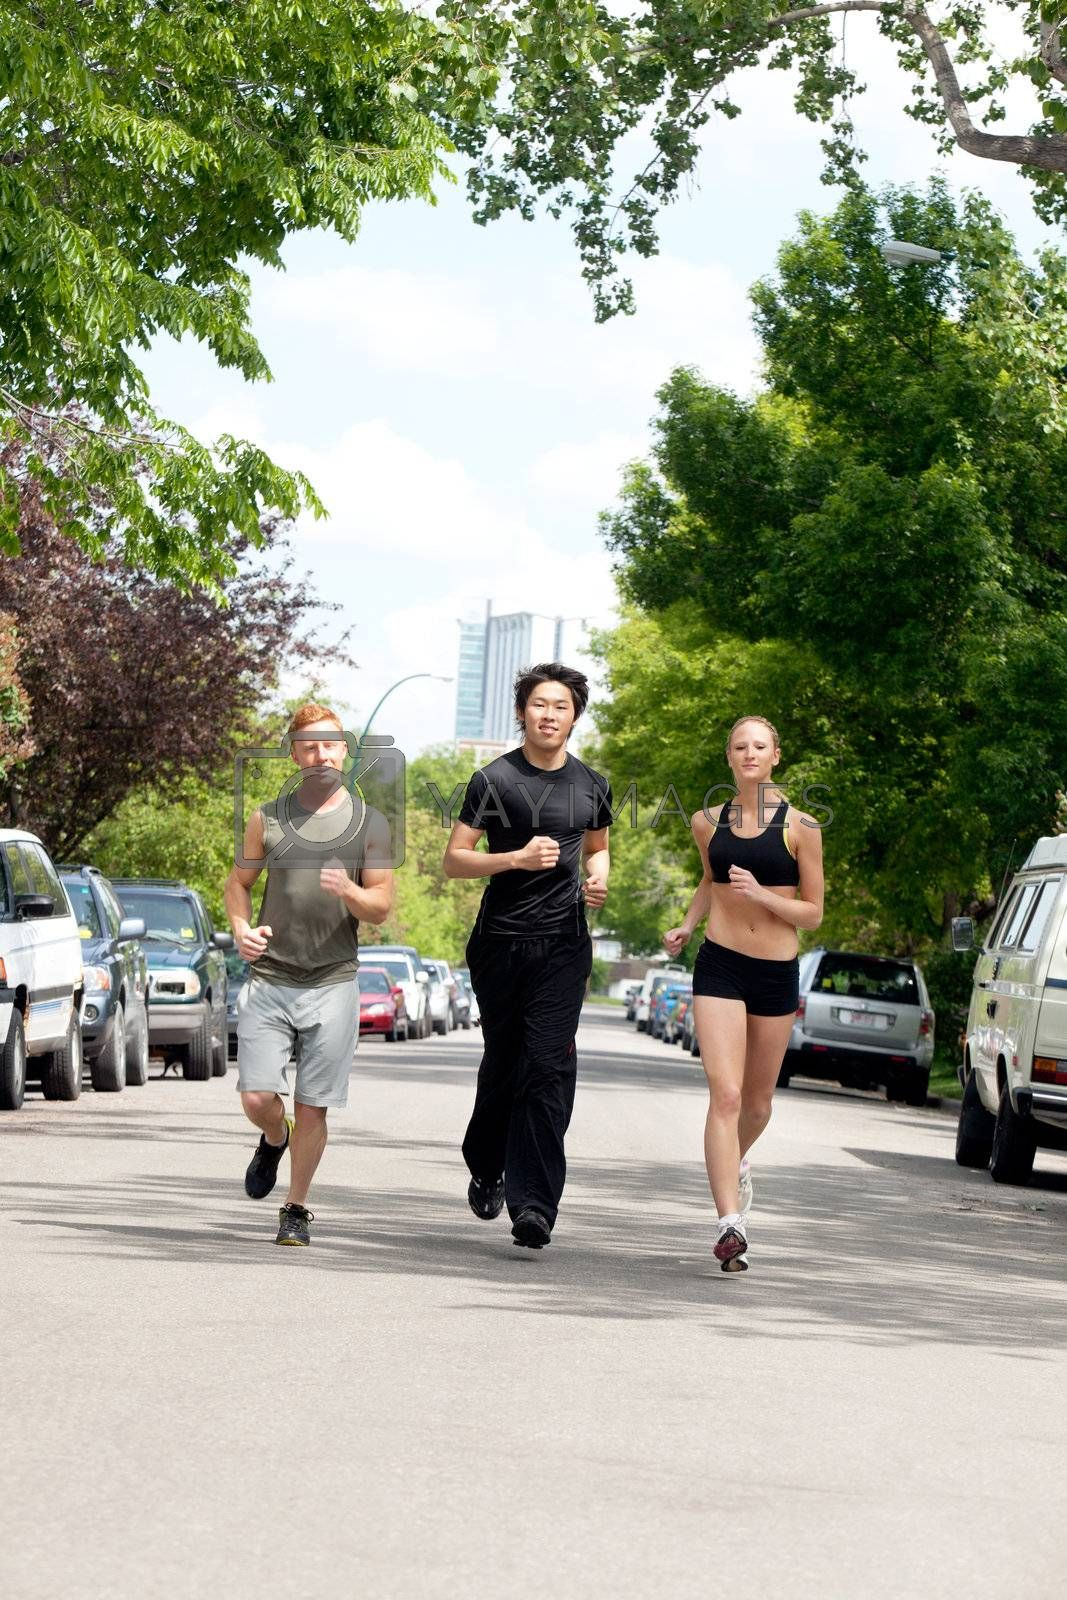 Friends jogging on the street by land vehicle